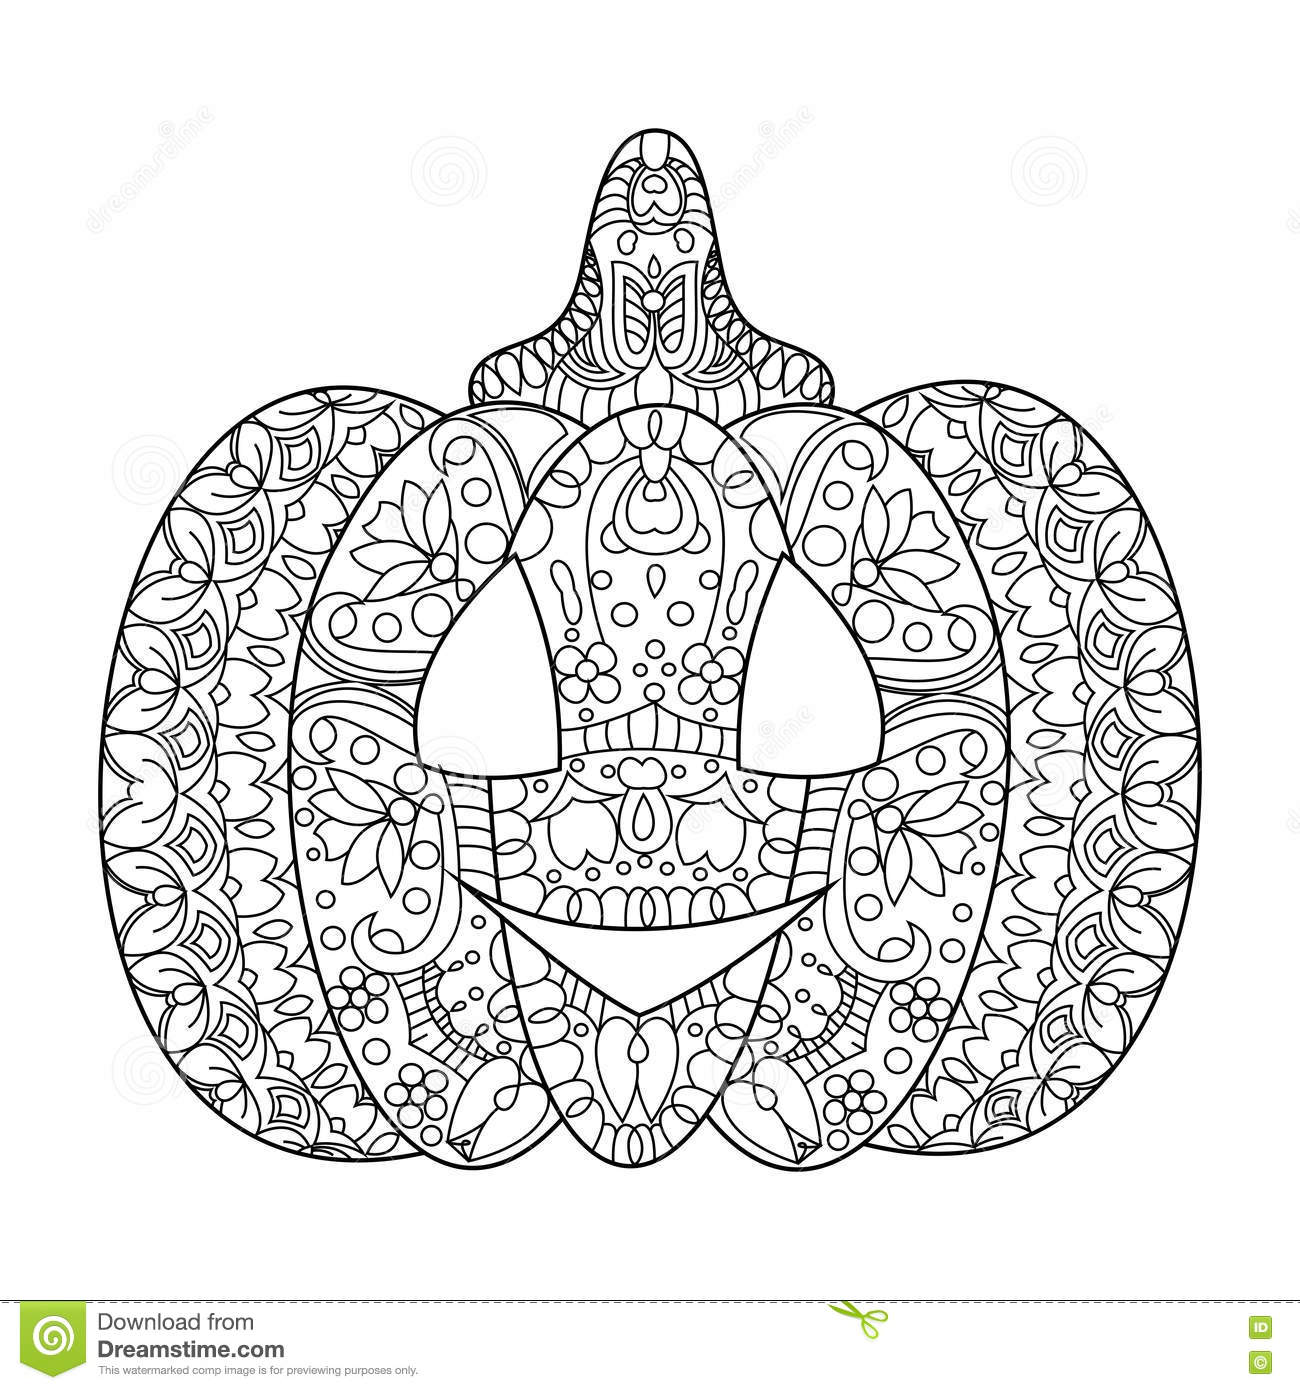 Halloween Pumpkin Coloring Book Vector Stock Vector - Illustration ...